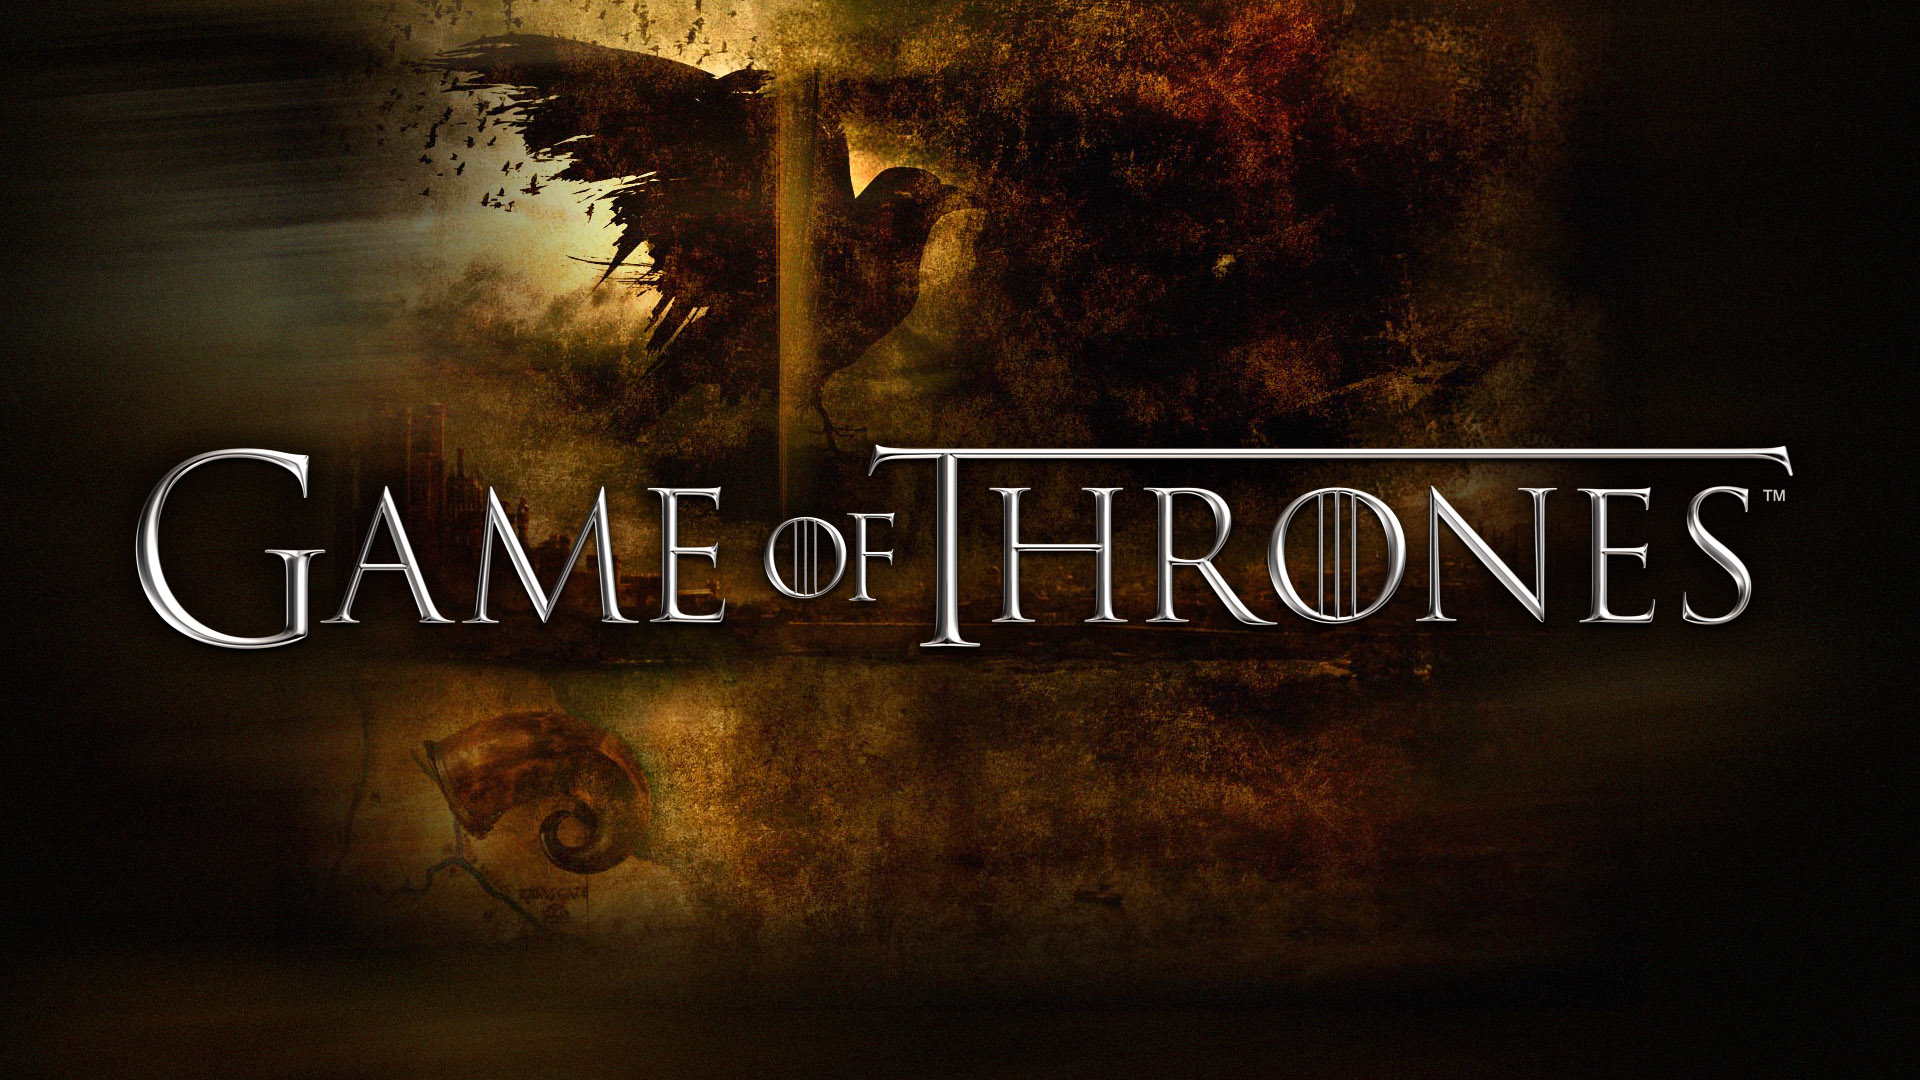 High Quality Game Of Thrones Hbo Wallpaper Full HD Pictures 1920x1080